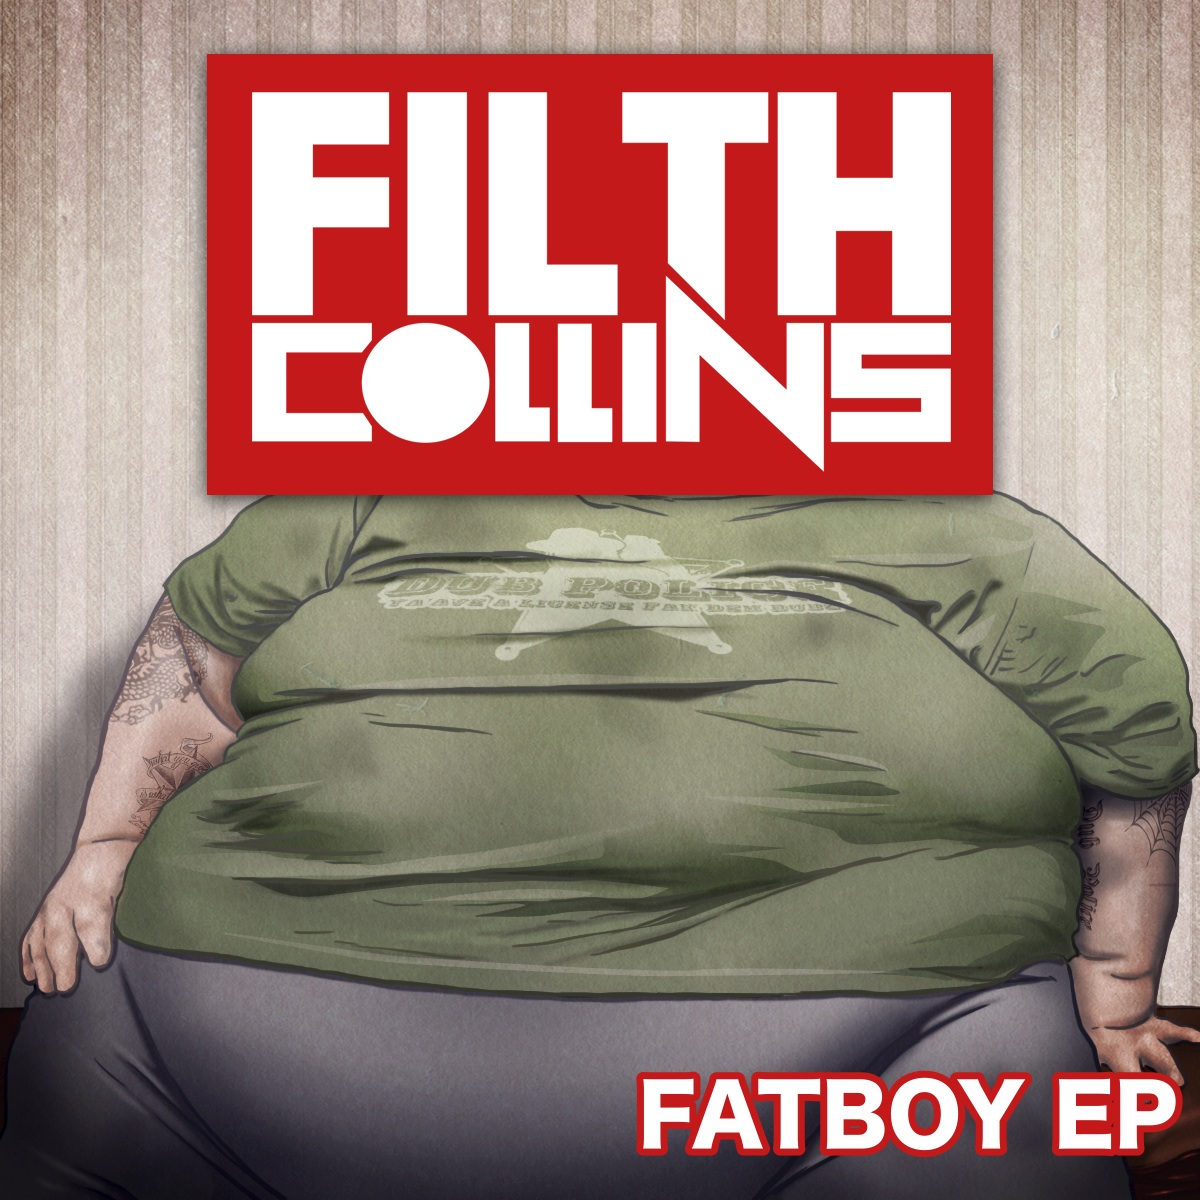 DP066: FATBOY EP